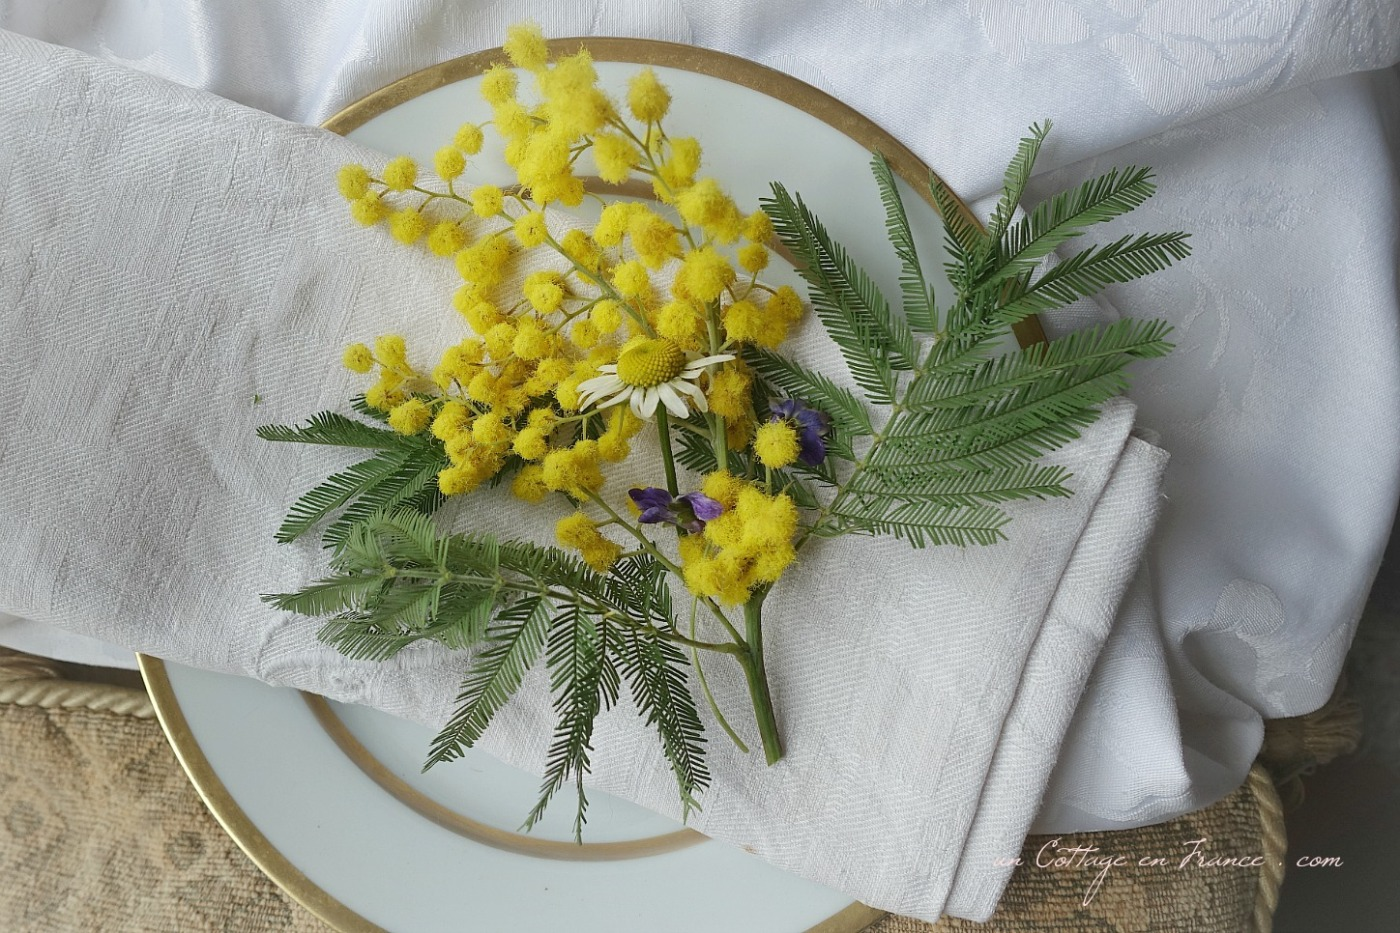 Mimosa en décoration de table, blog country chic